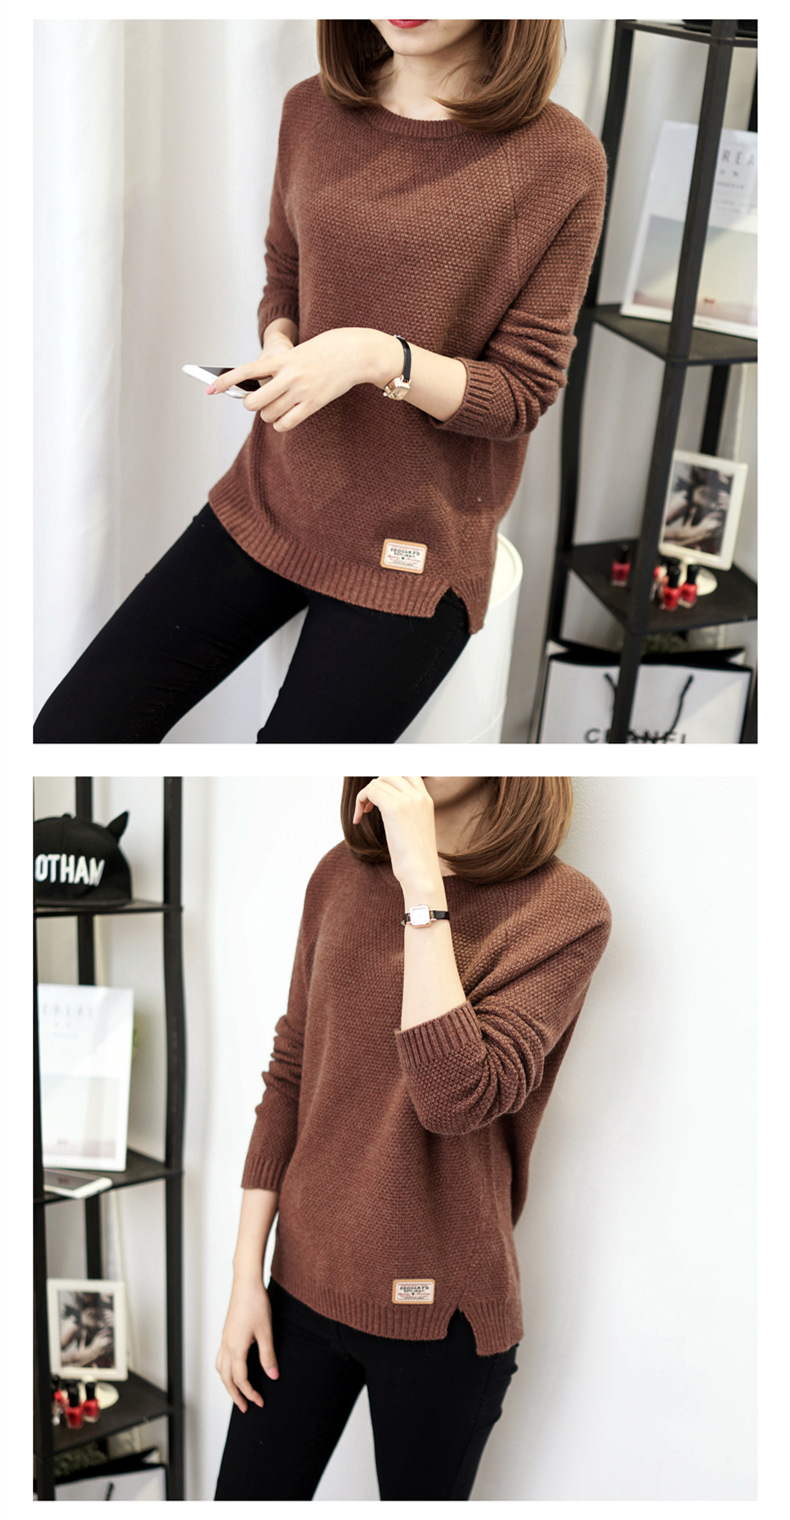 Autumn sweater 19 Winter women fashion sexy o-neck Casual women sweaters and pullover warm Long sleeve Knitted Sweater 7